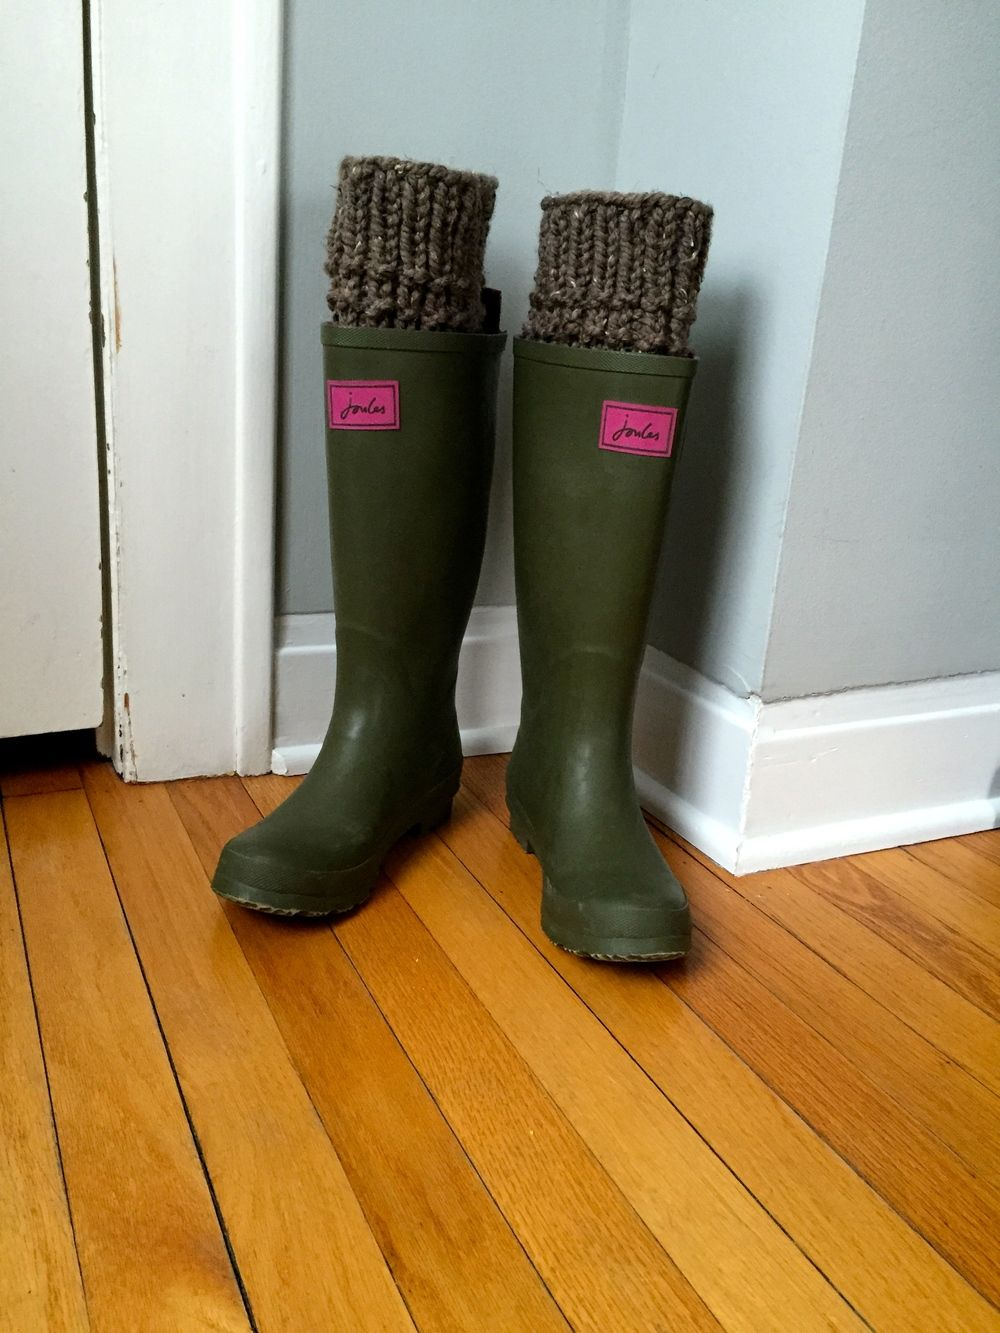 I recently bought these cute rain boots from my new favorite store ...